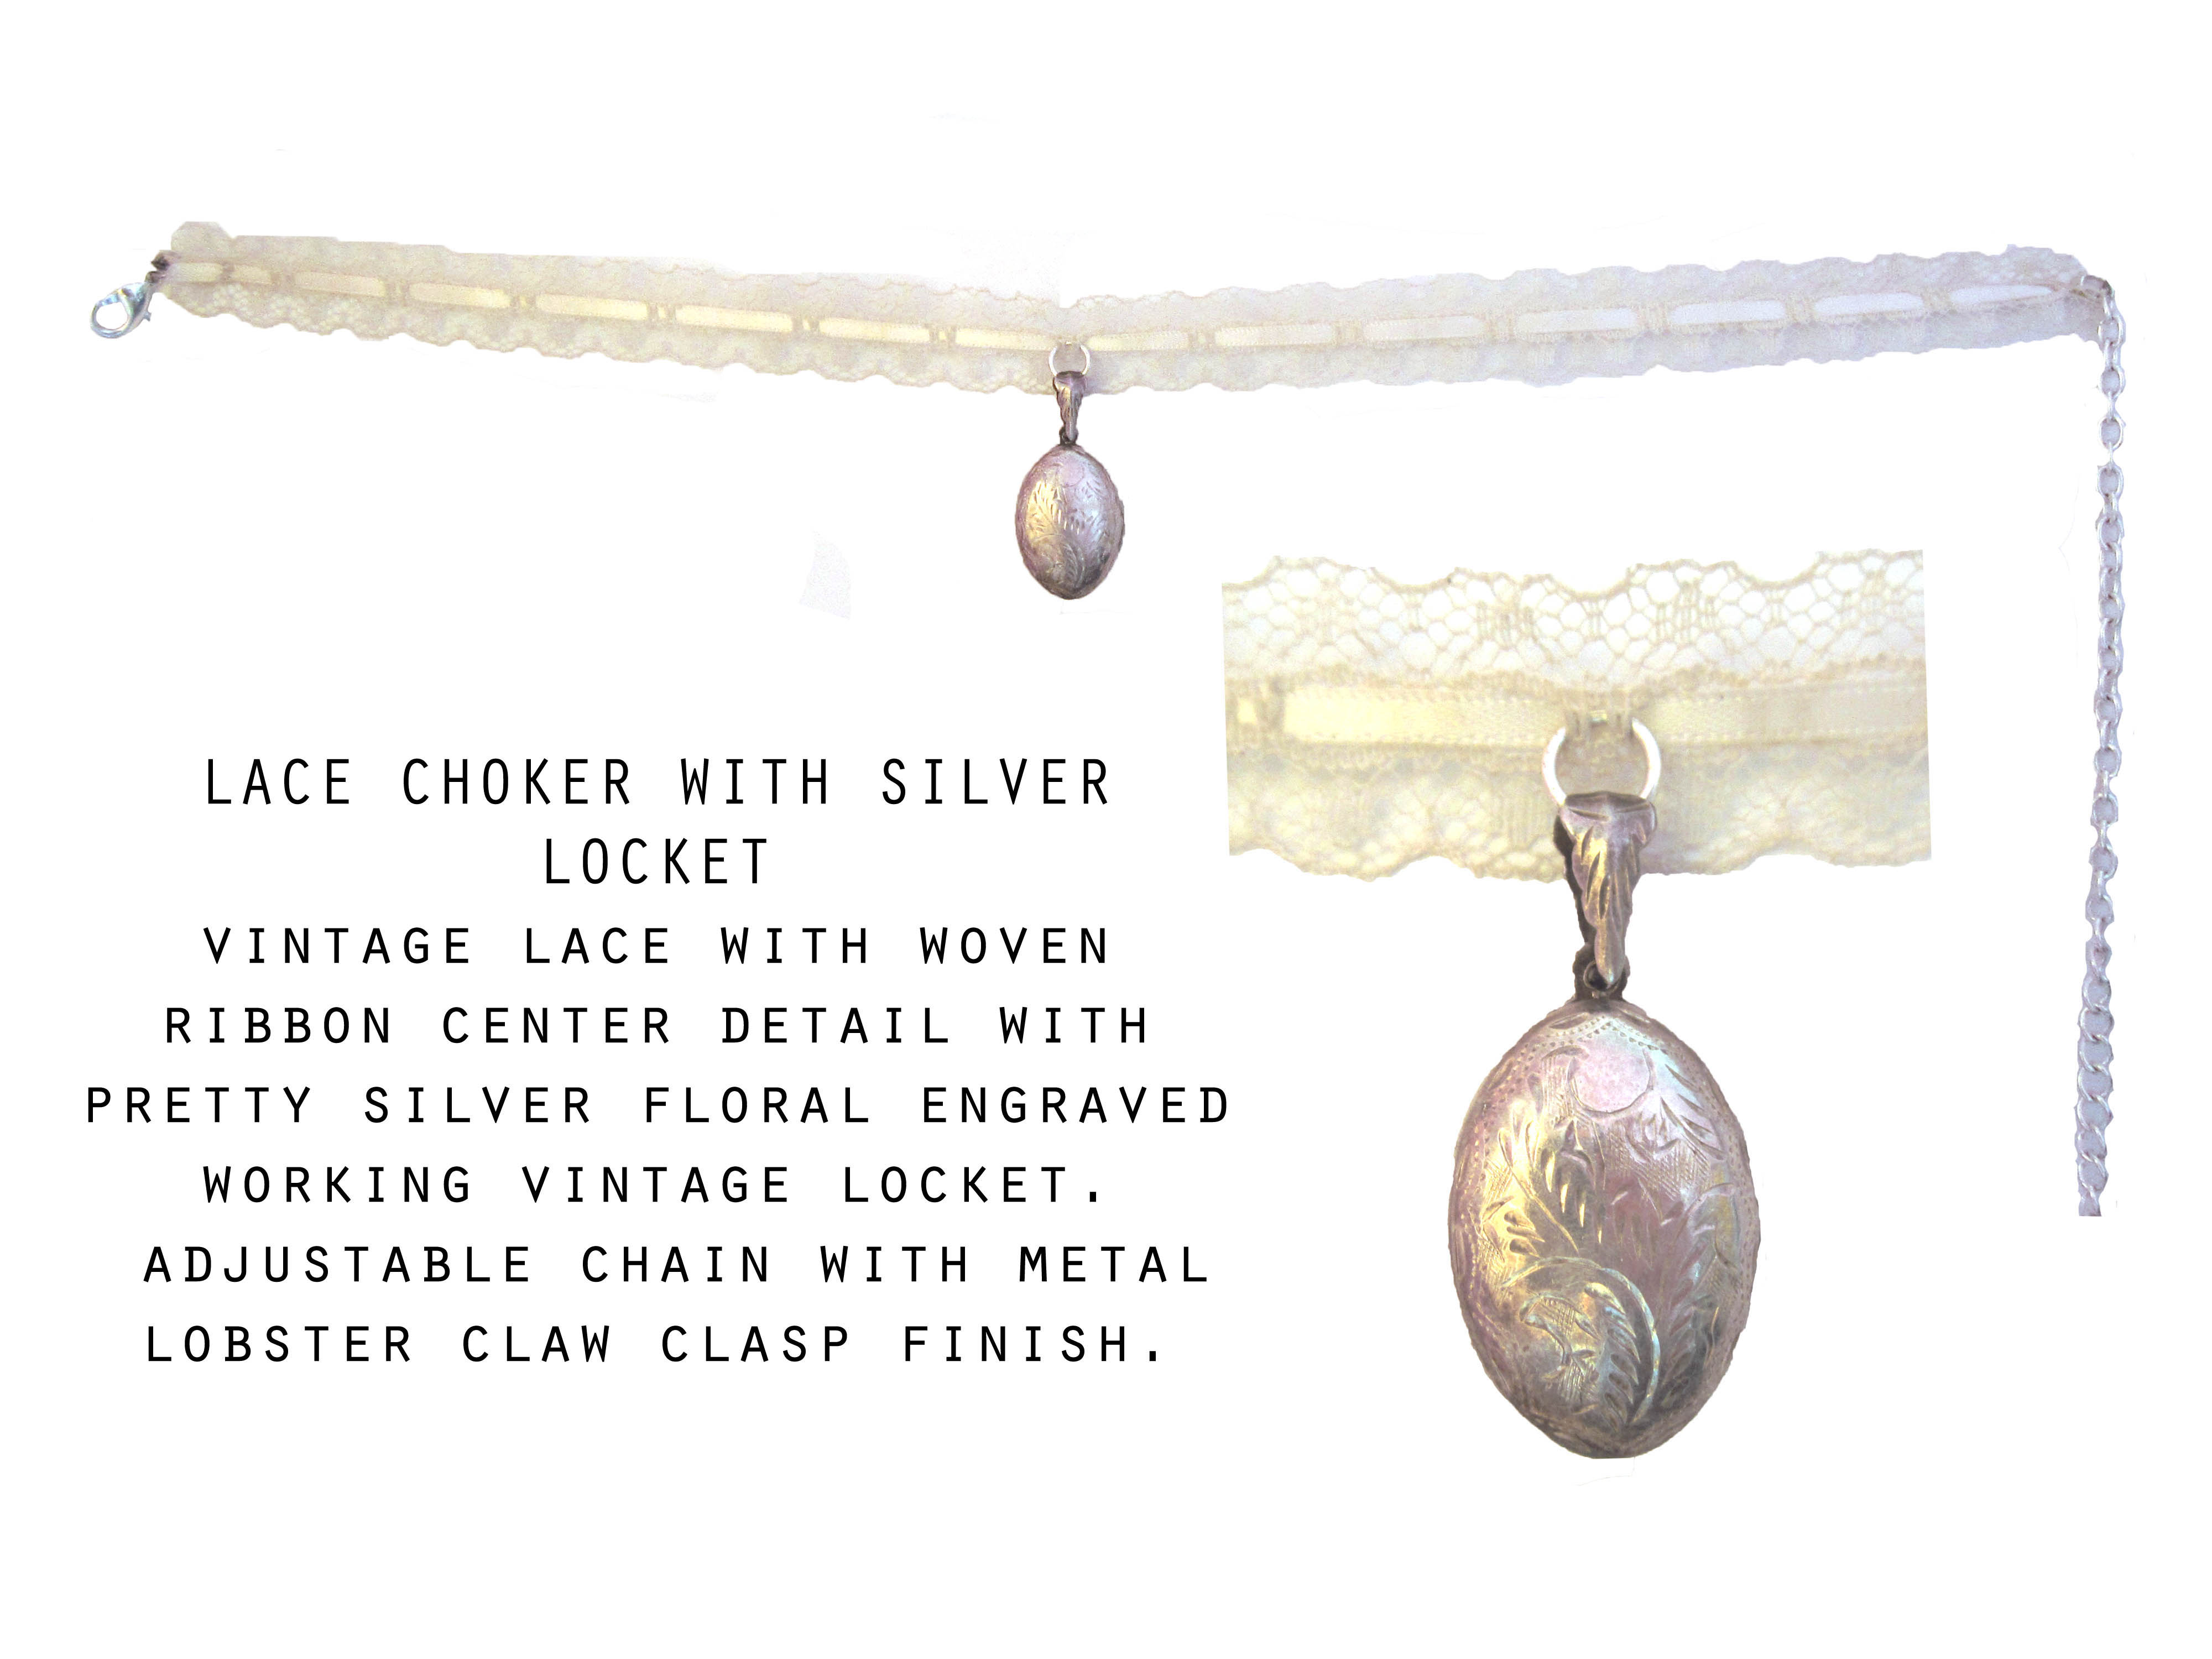 Lace Choker with Silver Locket